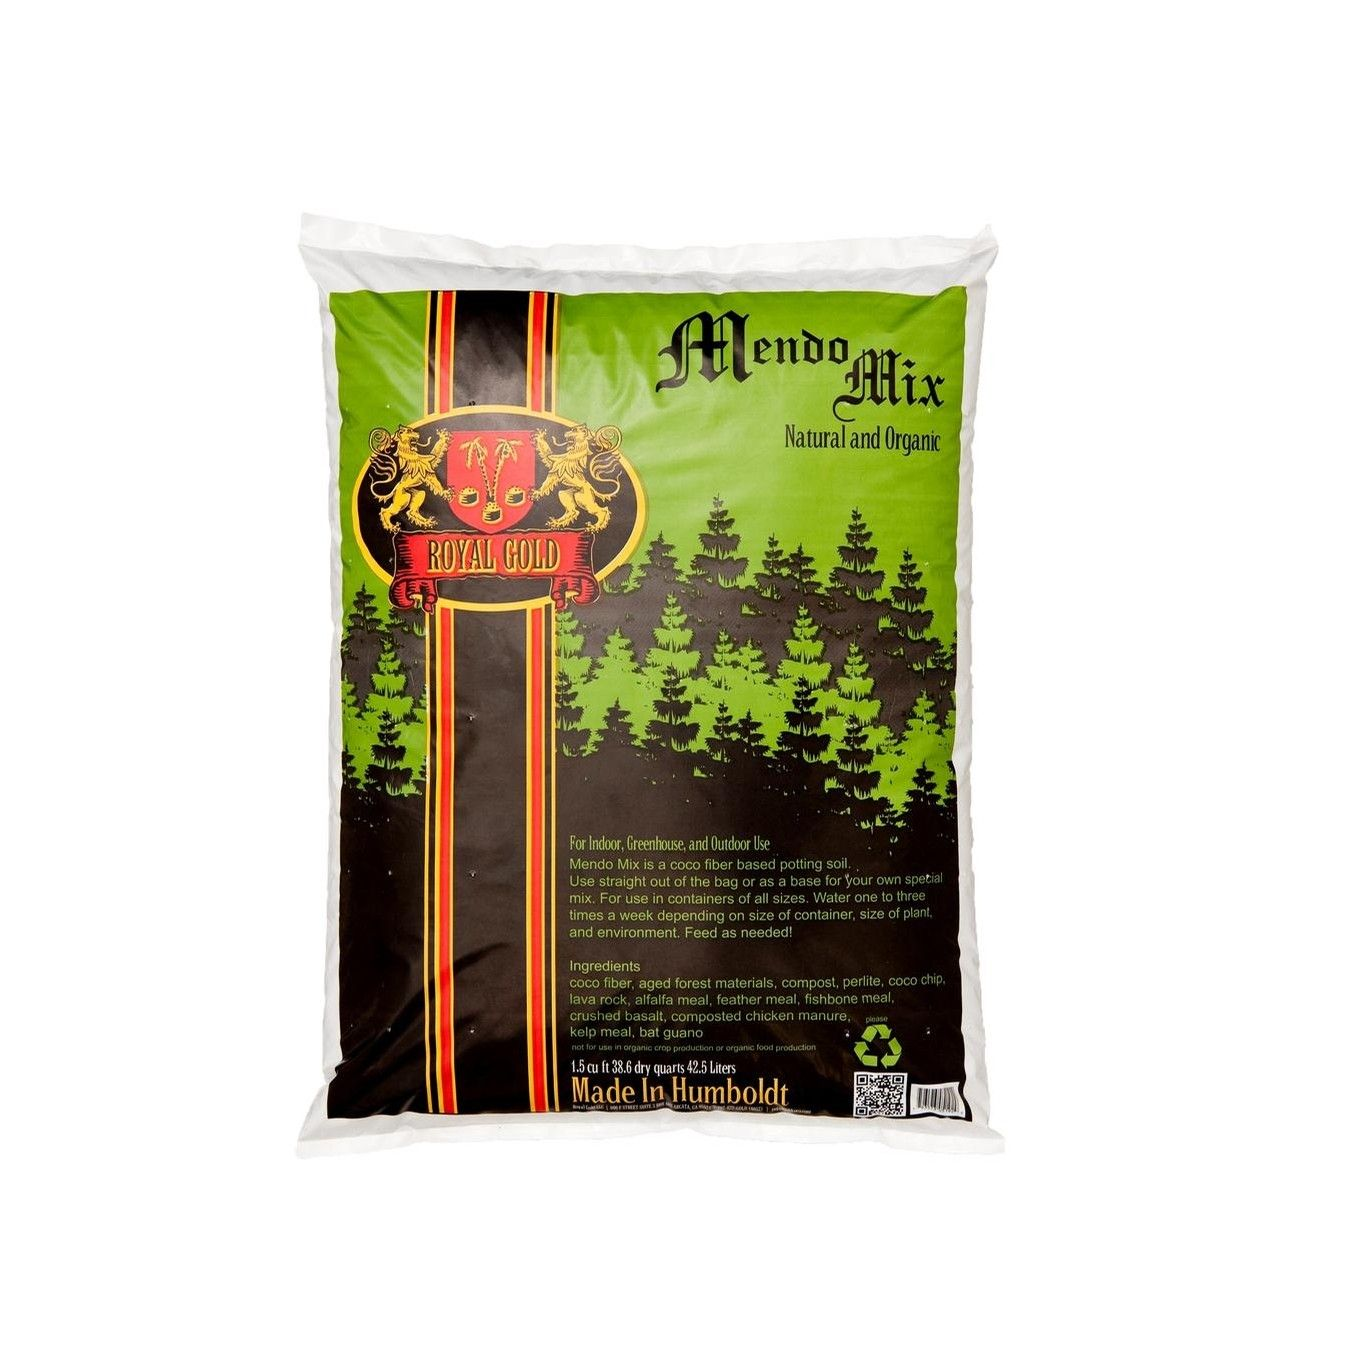 Royal Gold Soils for indoor and hydroponic gardening